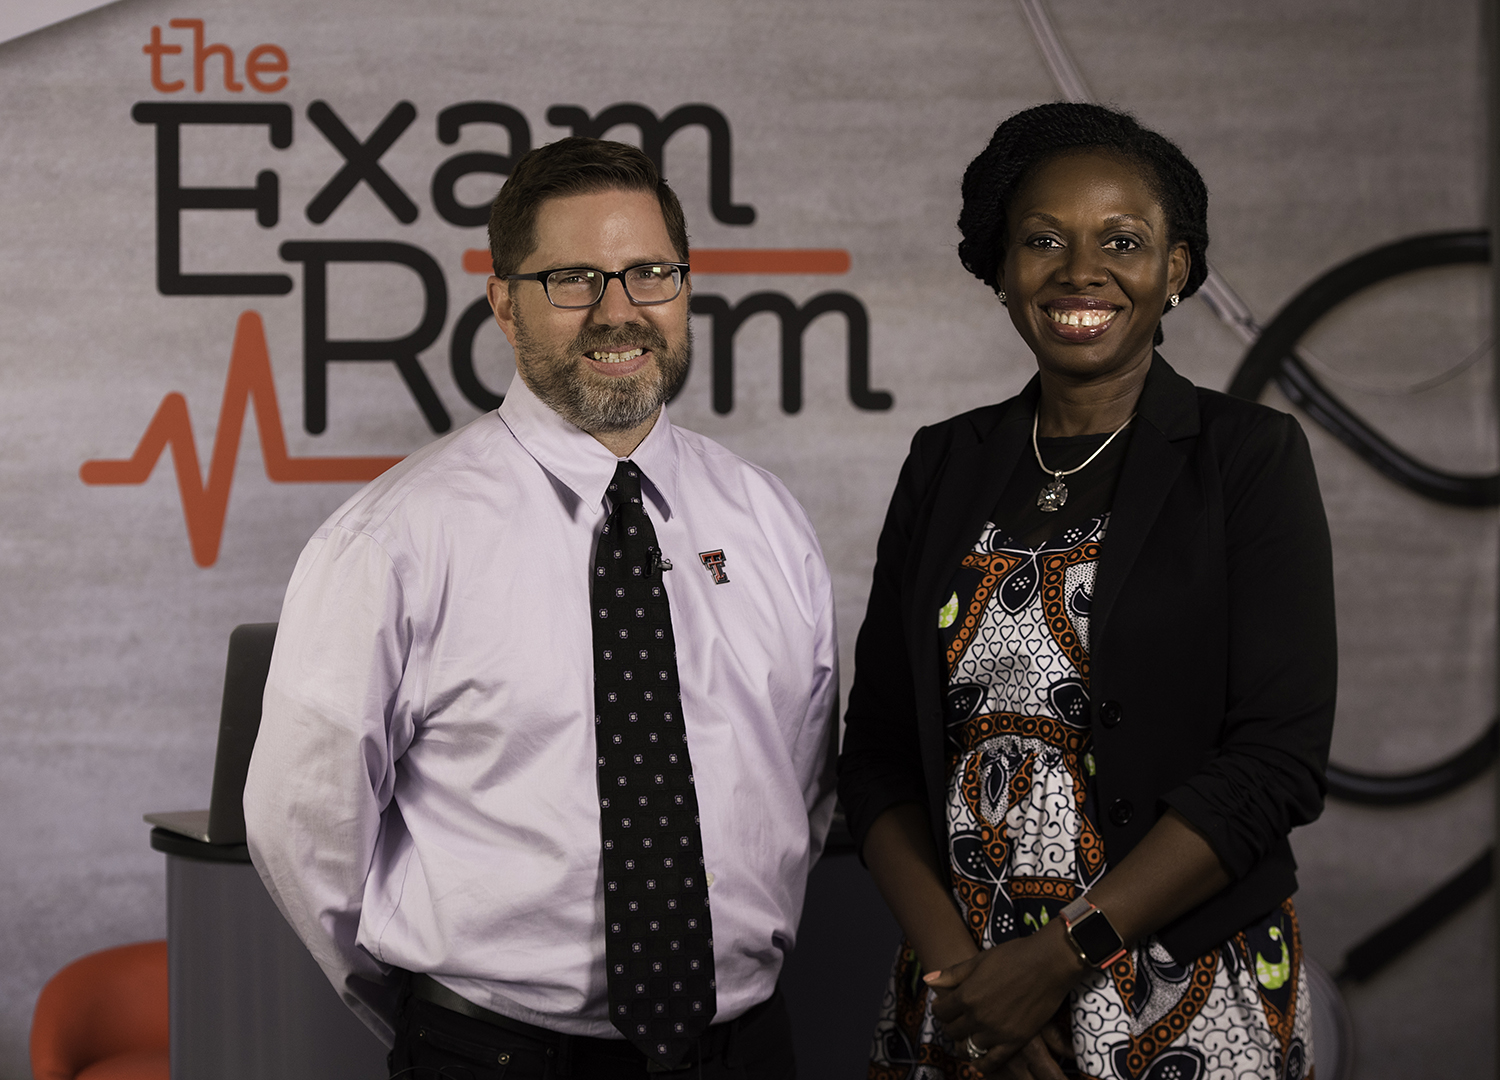 TTUHSC El Paso Hosts Q&A on Family Medicine